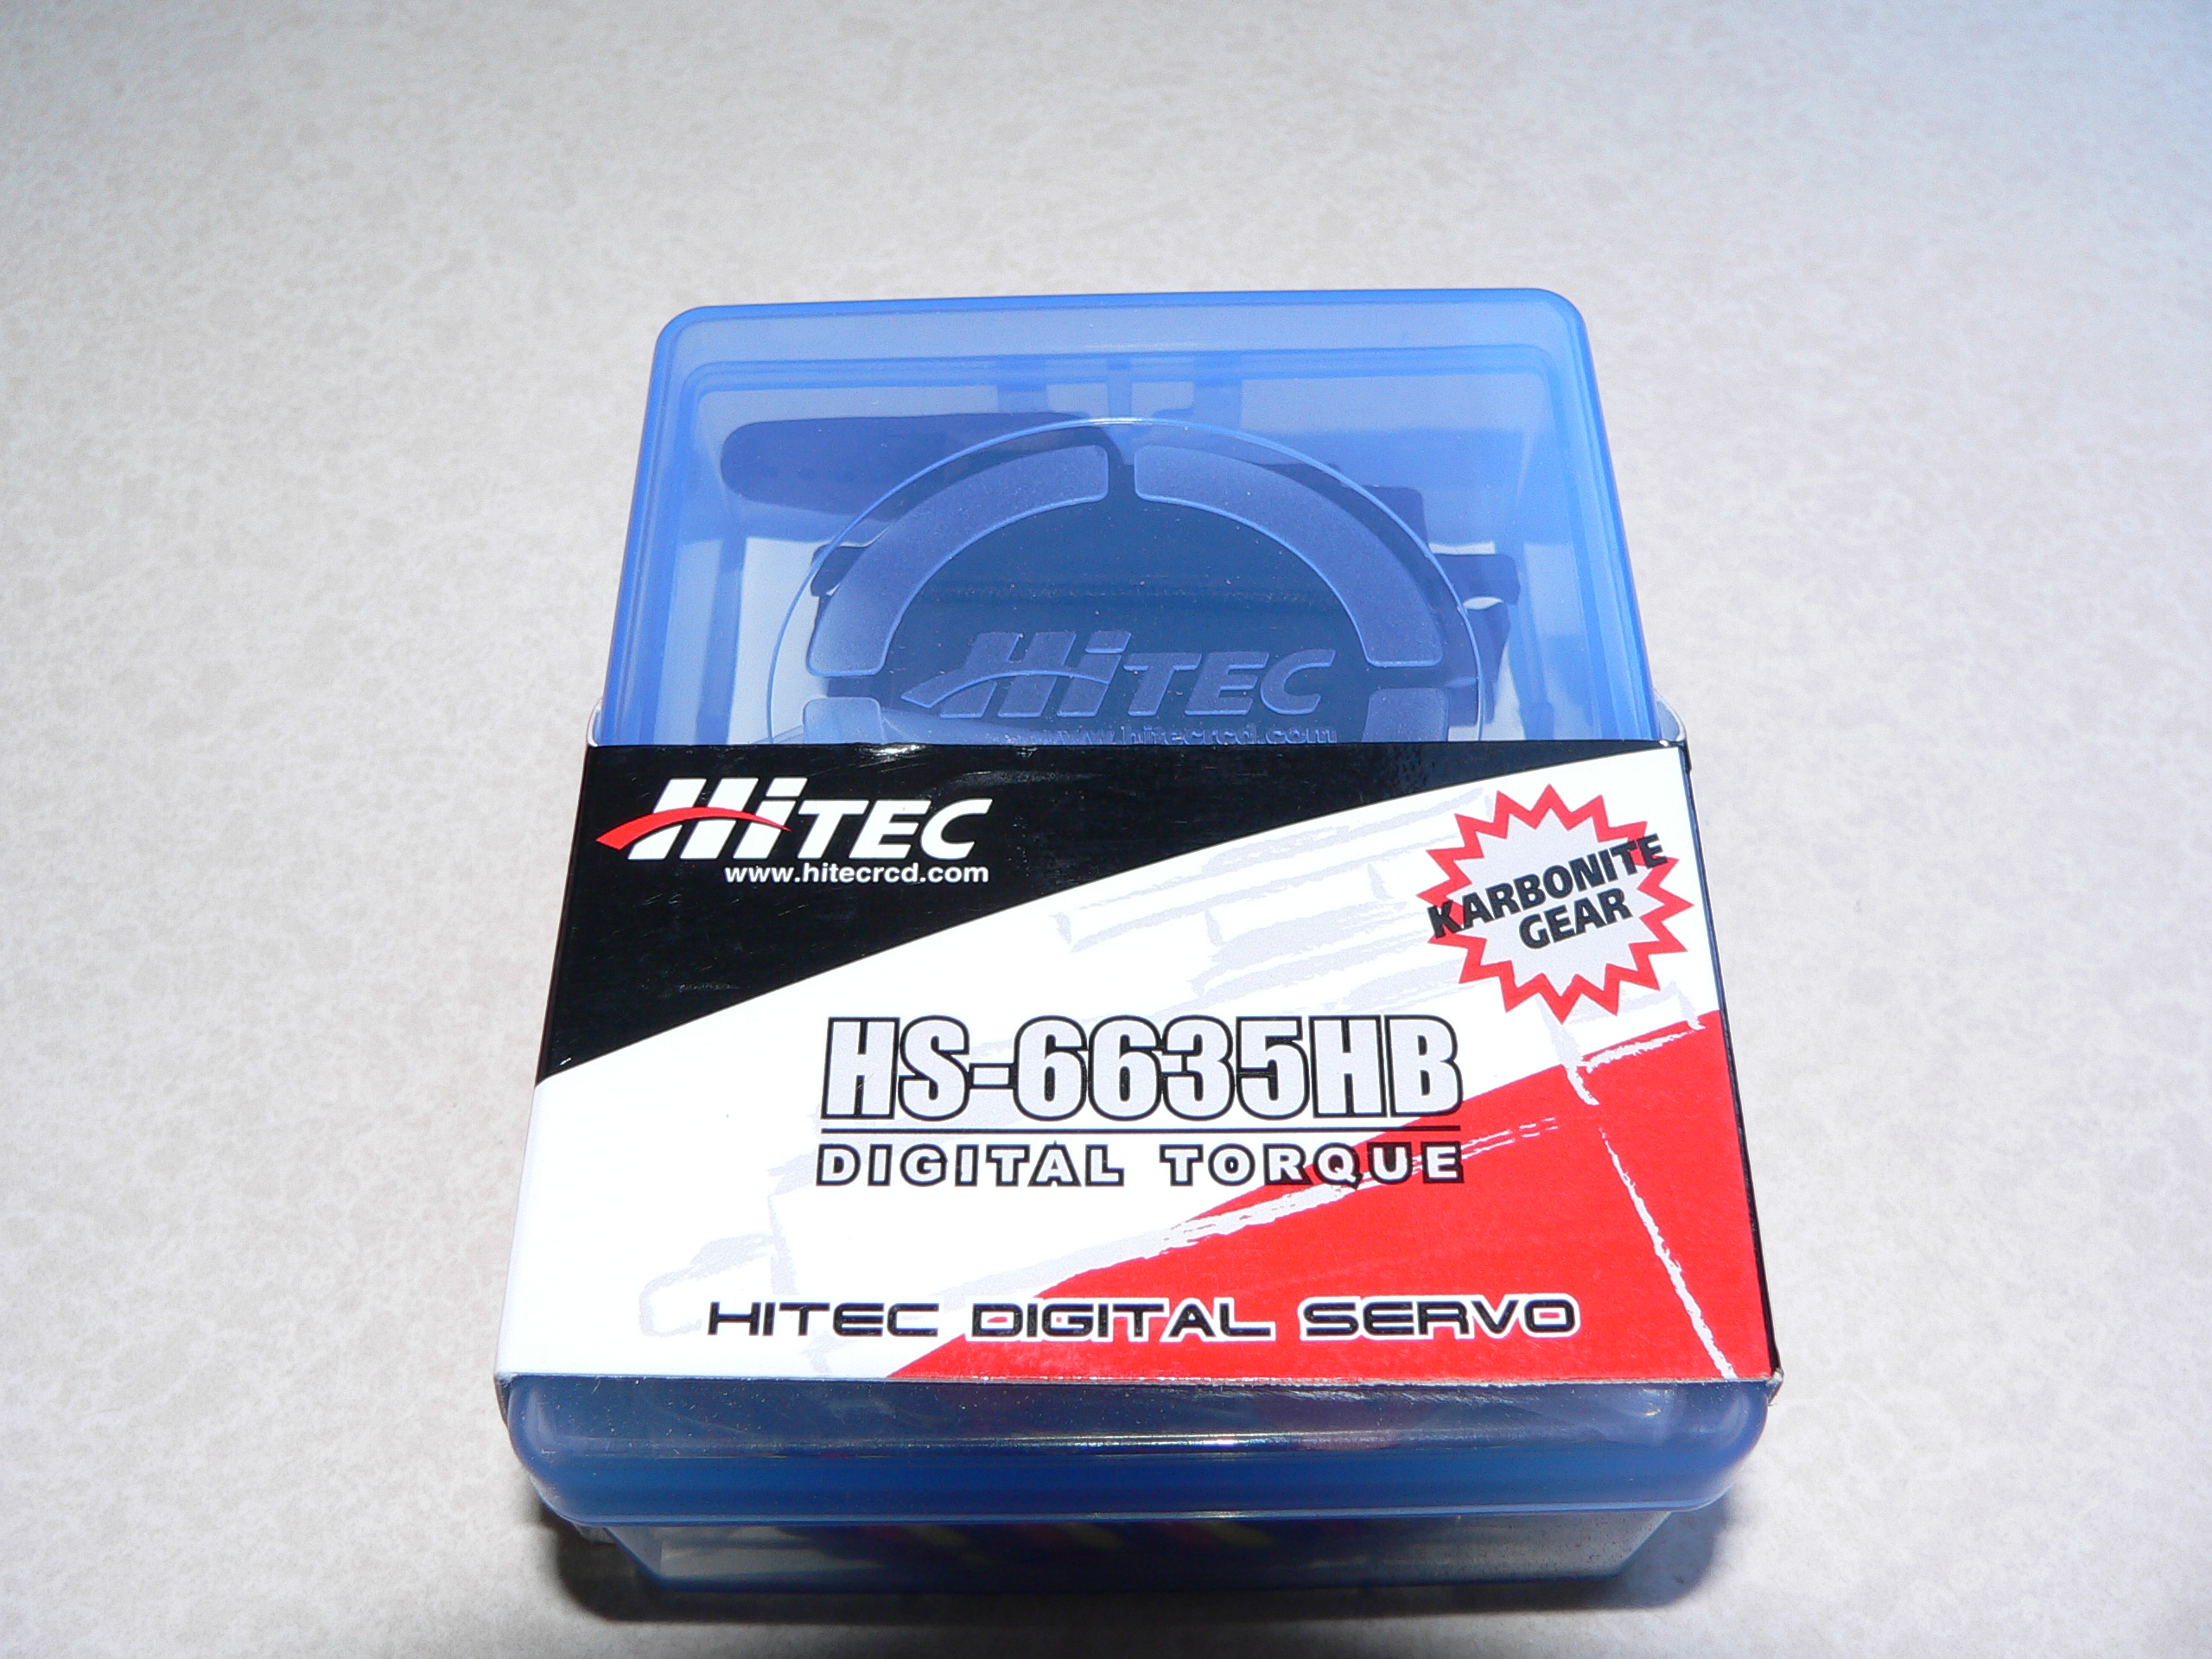 The Hitec HS-6635HB comes packaged in a handy plastic box that can be used around the workshop for storing all those little bits that tend to create clutter.